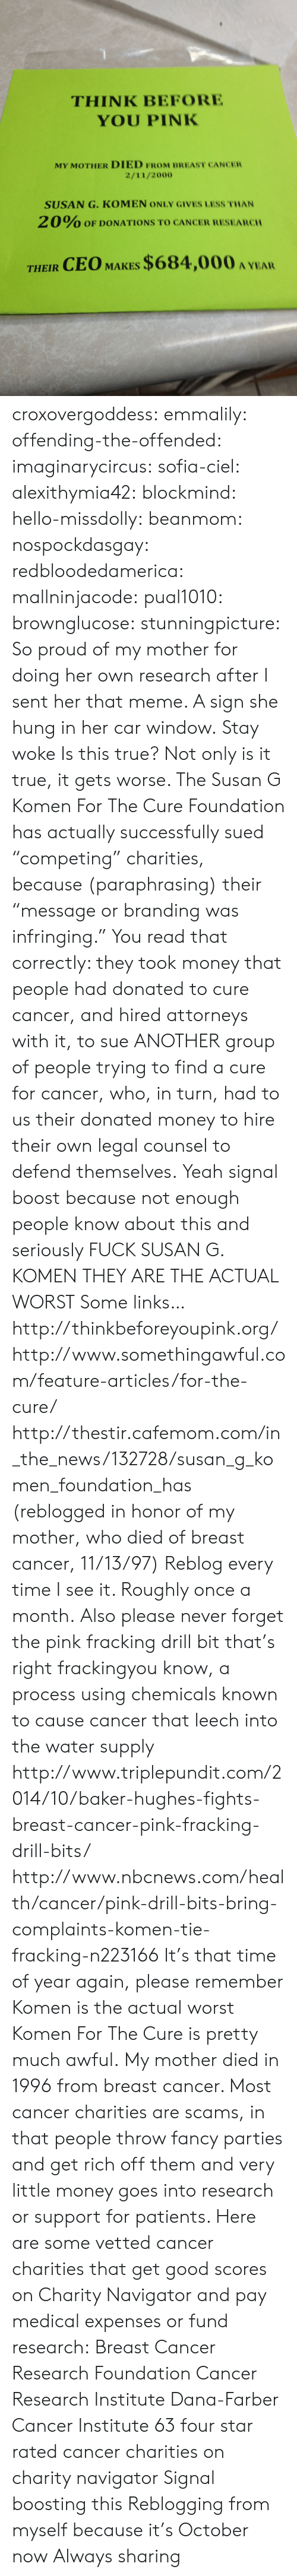 "attorneys: THINK BEFORE  YOU PINK  MY MOTHER DIED FROM BREAST CANCER  2/11/2000  SUSAN G. KOMEN ONLY GIVES LESS THAN  2 0% OF DONATIONS TO CANCER RESEARCH  THEIR CEO MAKES $684,000 A YEA croxovergoddess: emmalily:  offending-the-offended:  imaginarycircus:  sofia-ciel:  alexithymia42:  blockmind:  hello-missdolly:  beanmom:  nospockdasgay:  redbloodedamerica:  mallninjacode:  pual1010:  brownglucose:  stunningpicture:  So proud of my mother for doing her own research after I sent her that meme. A sign she hung in her car window.  Stay woke  Is this true?  Not only is it true, it gets worse. The Susan G Komen For The Cure Foundation has actually successfully sued ""competing"" charities, because (paraphrasing) their ""message or branding was infringing."" You read that correctly: they took money that people had donated to cure cancer, and hired attorneys with it, to sue ANOTHER group of people trying to find a cure for cancer, who, in turn, had to us their donated money to hire their own legal counsel to defend themselves.    Yeah signal boost because not enough people know about this and seriously FUCK SUSAN G. KOMEN THEY ARE THE ACTUAL WORST  Some links… http://thinkbeforeyoupink.org/ http://www.somethingawful.com/feature-articles/for-the-cure/ http://thestir.cafemom.com/in_the_news/132728/susan_g_komen_foundation_has (reblogged in honor of my mother, who died of breast cancer, 11/13/97)  Reblog every time I see it. Roughly once a month.  Also please never forget the pink fracking drill bit that's right frackingyou know, a process using chemicals known to cause cancer that leech into the water supply  http://www.triplepundit.com/2014/10/baker-hughes-fights-breast-cancer-pink-fracking-drill-bits/ http://www.nbcnews.com/health/cancer/pink-drill-bits-bring-complaints-komen-tie-fracking-n223166  It's that time of year again, please remember Komen is the actual worst  Komen For The Cure is pretty much awful.  My mother died in 1996 from breast cancer. Most cancer charities are scams, in that people throw fancy parties and get rich off them and very little money goes into research or support for patients. Here are some vetted cancer charities that get good scores on Charity Navigator and pay medical expenses or fund research: Breast Cancer Research Foundation Cancer Research Institute Dana-Farber Cancer Institute 63 four star rated cancer charities on charity navigator  Signal boosting this   Reblogging from myself because it's October now   Always sharing"